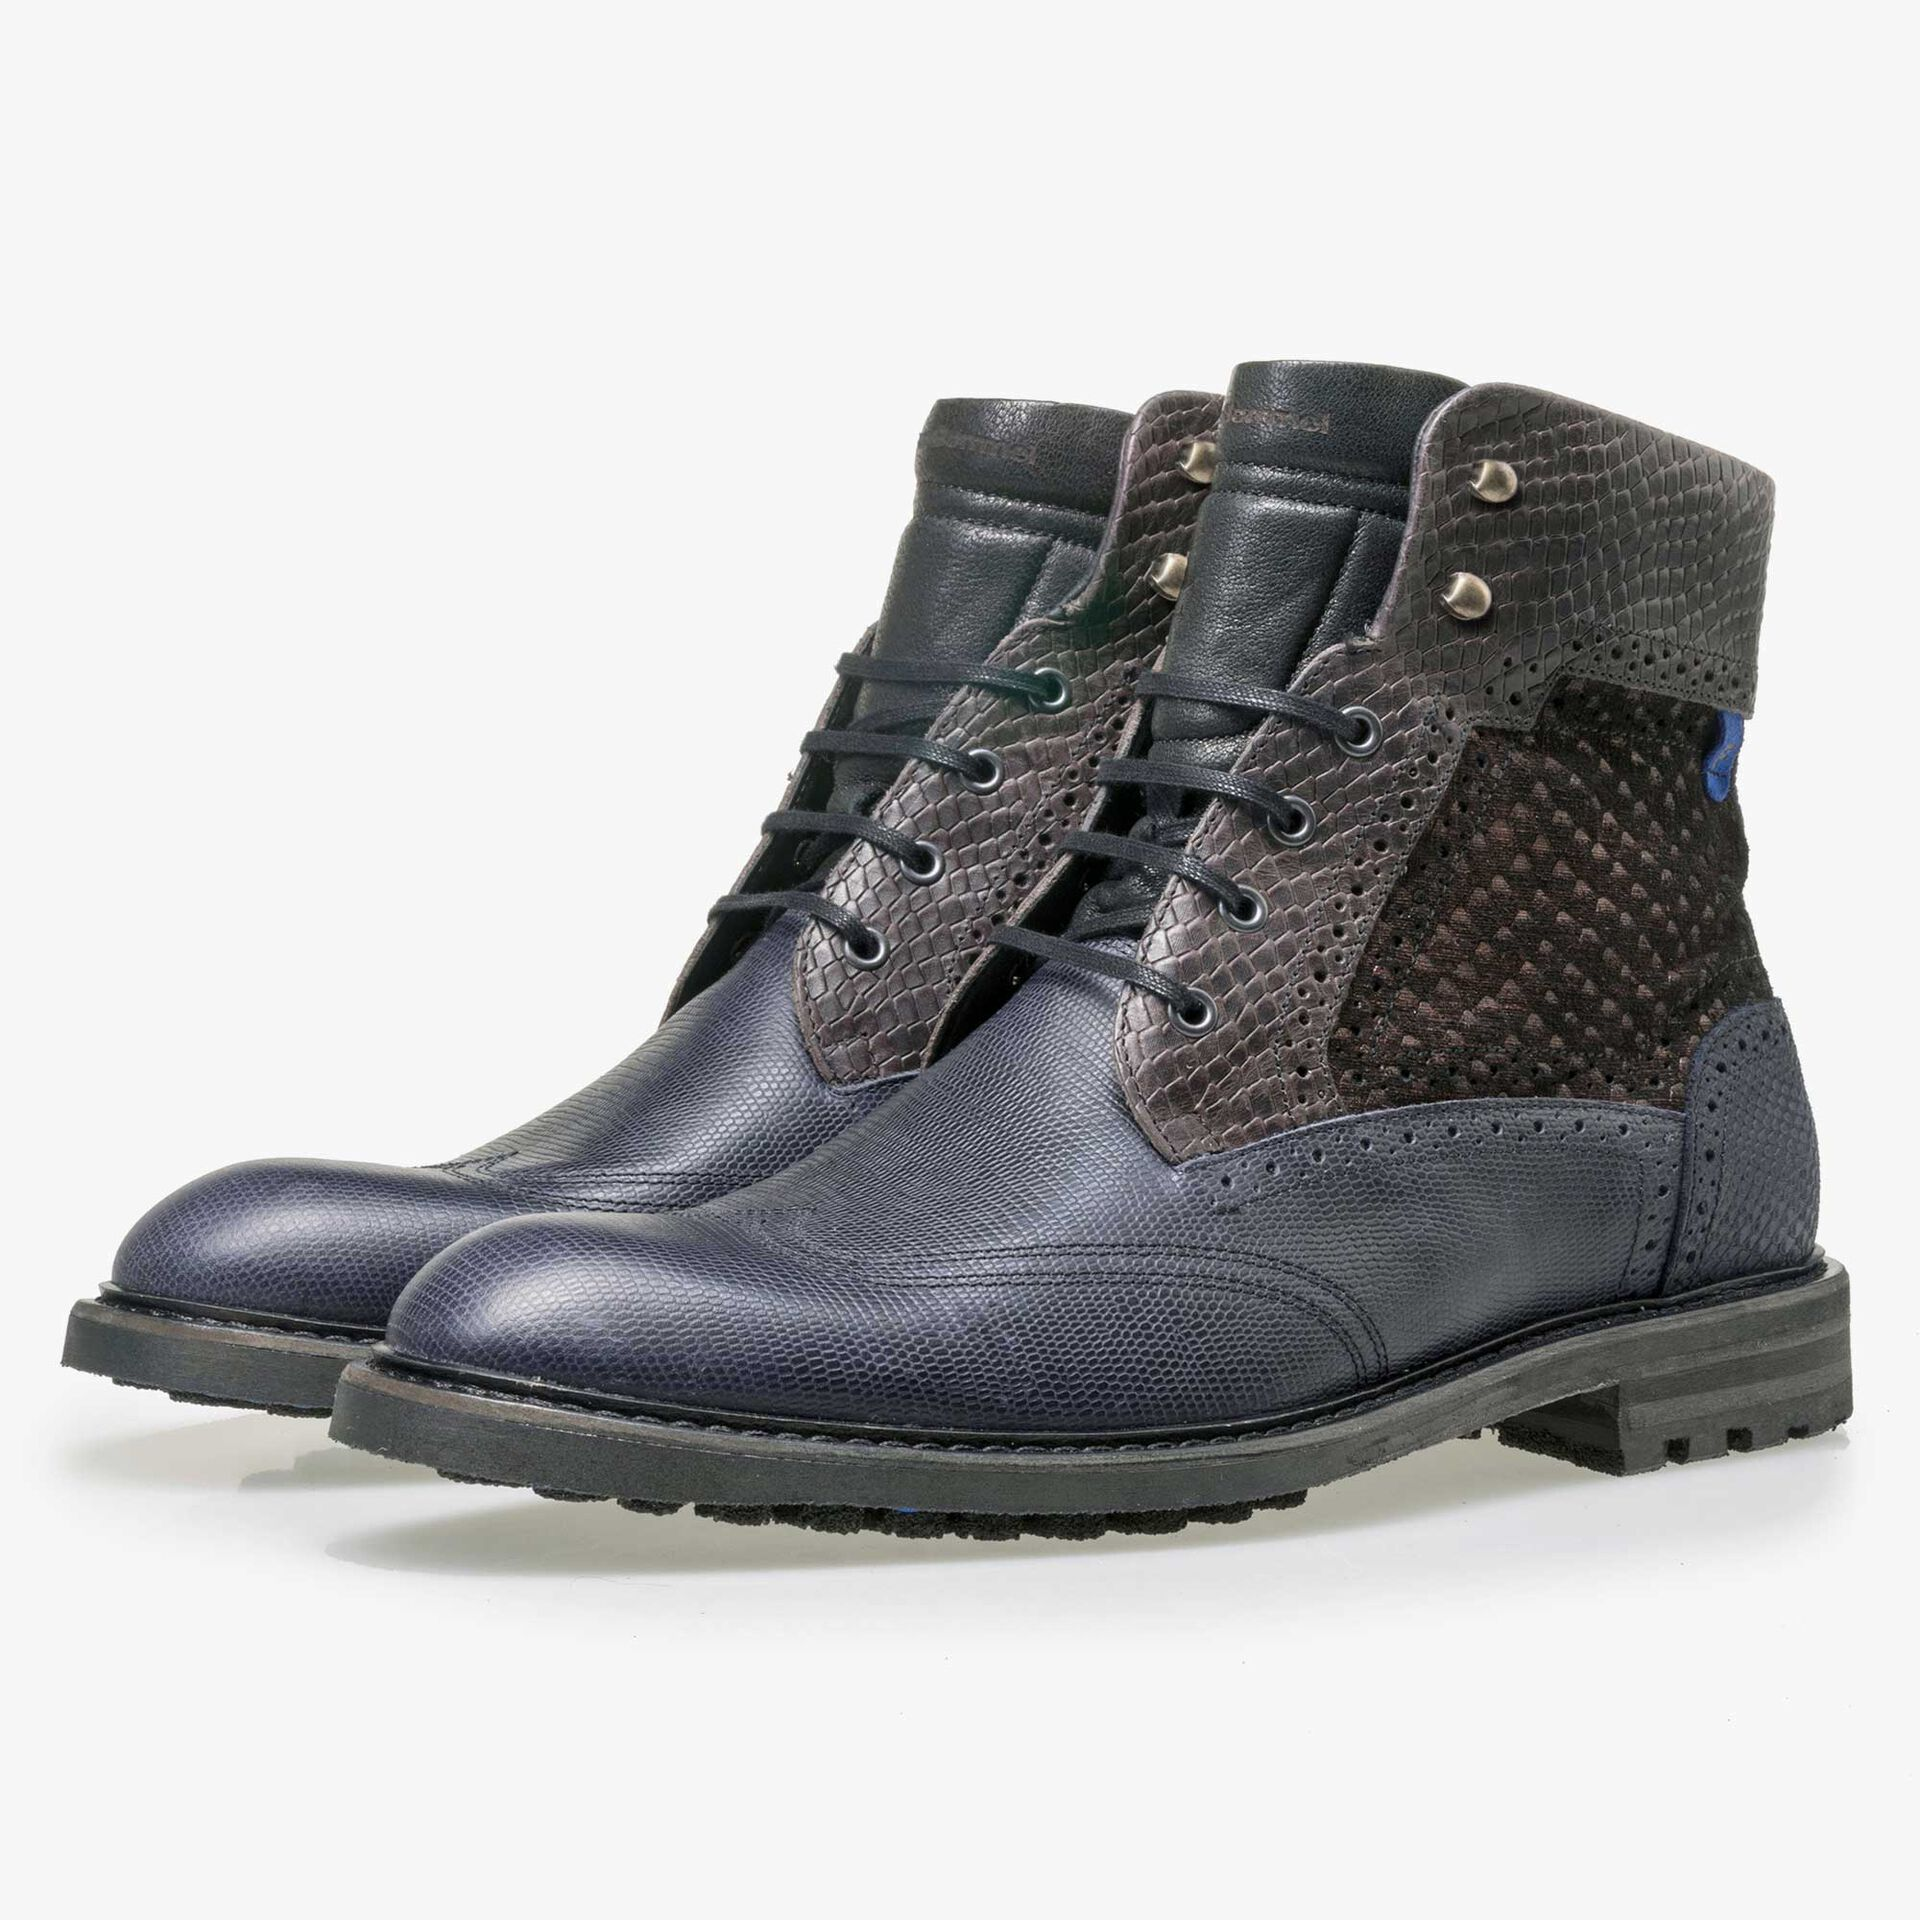 Floris van Bommel dark blue high leather lace boot finished with a snake print